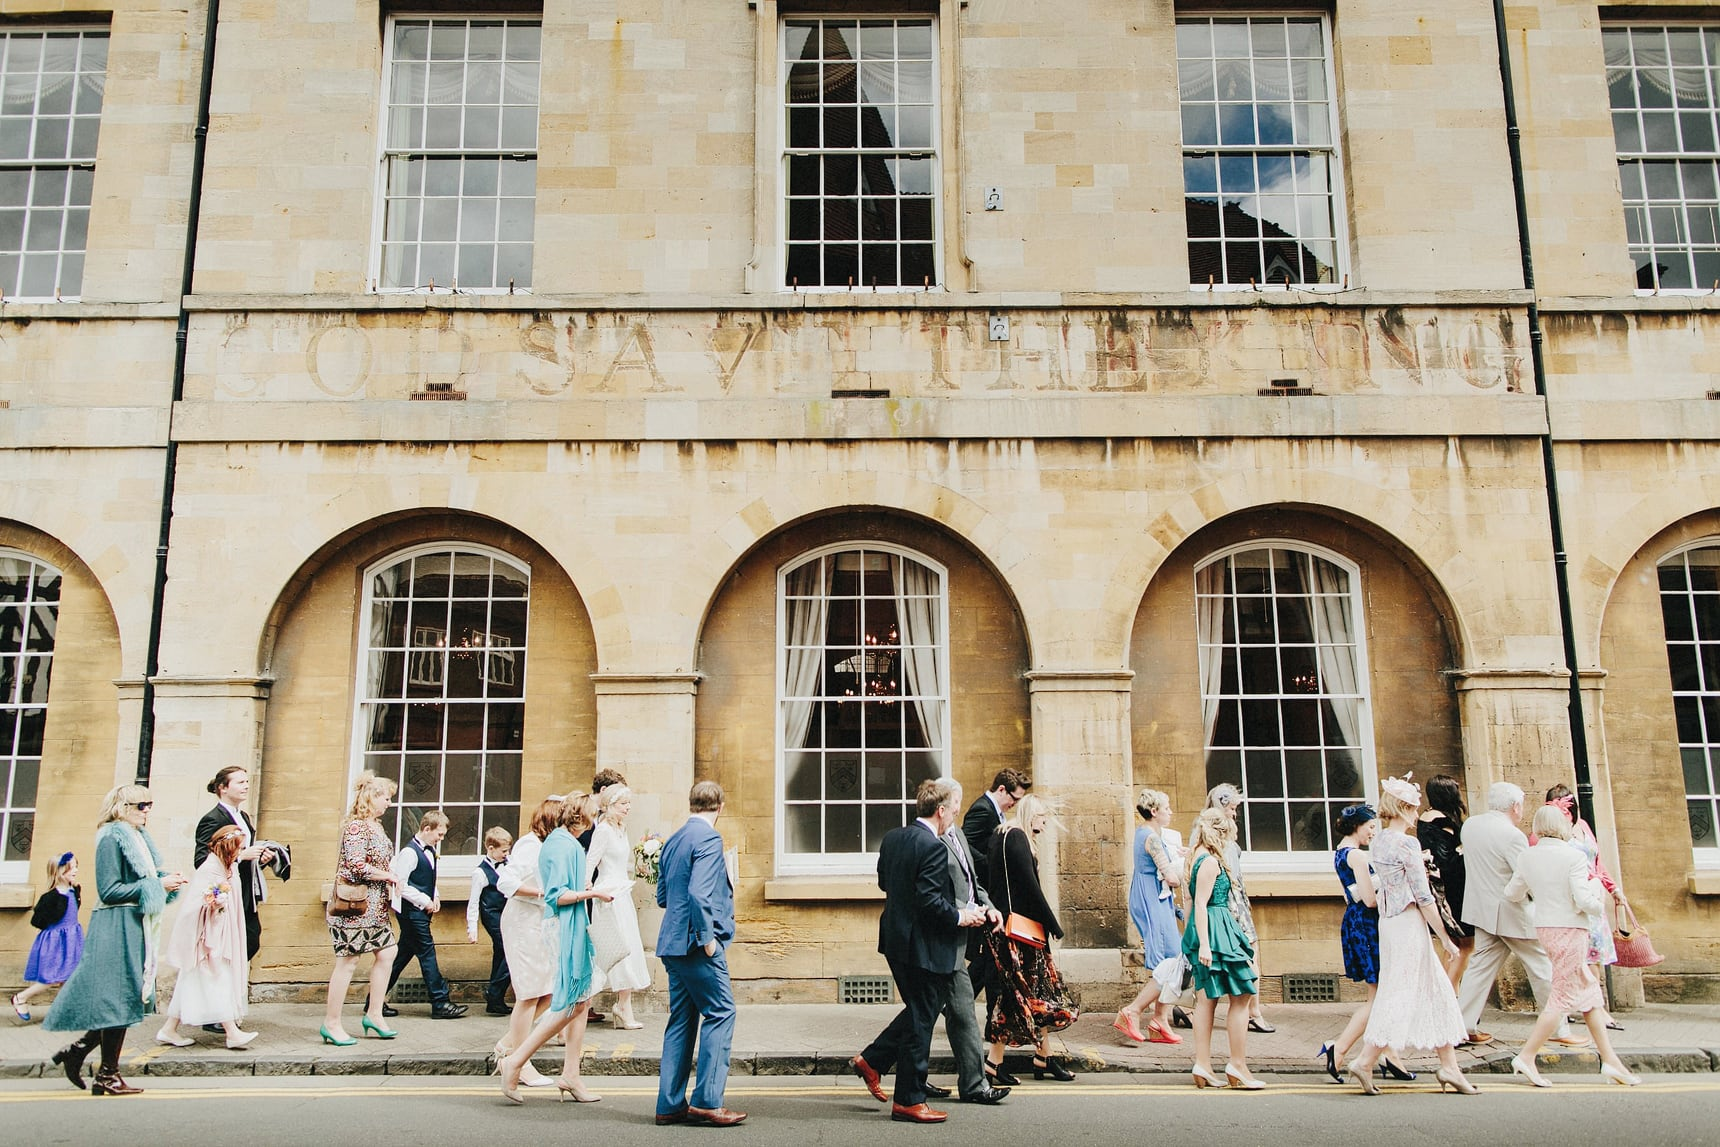 stratford upon avon town hall wedding photography